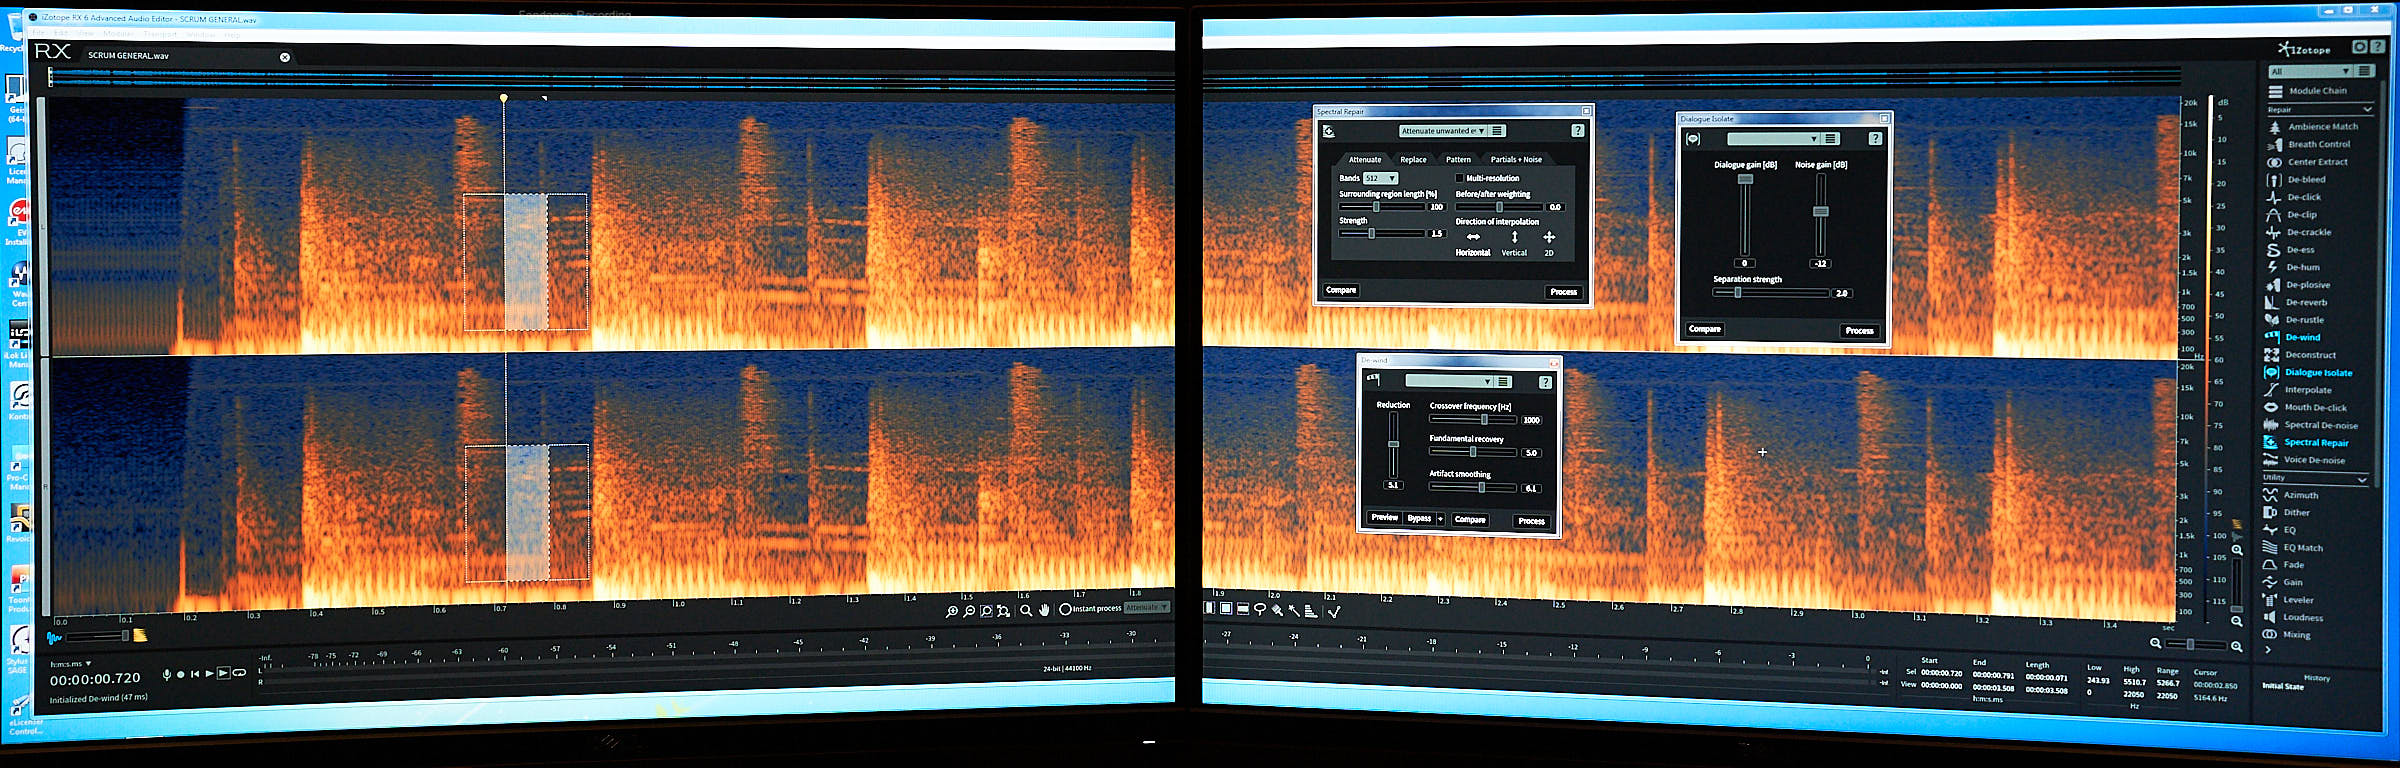 Spectrogram is one the tools used for audio and sound restoration.